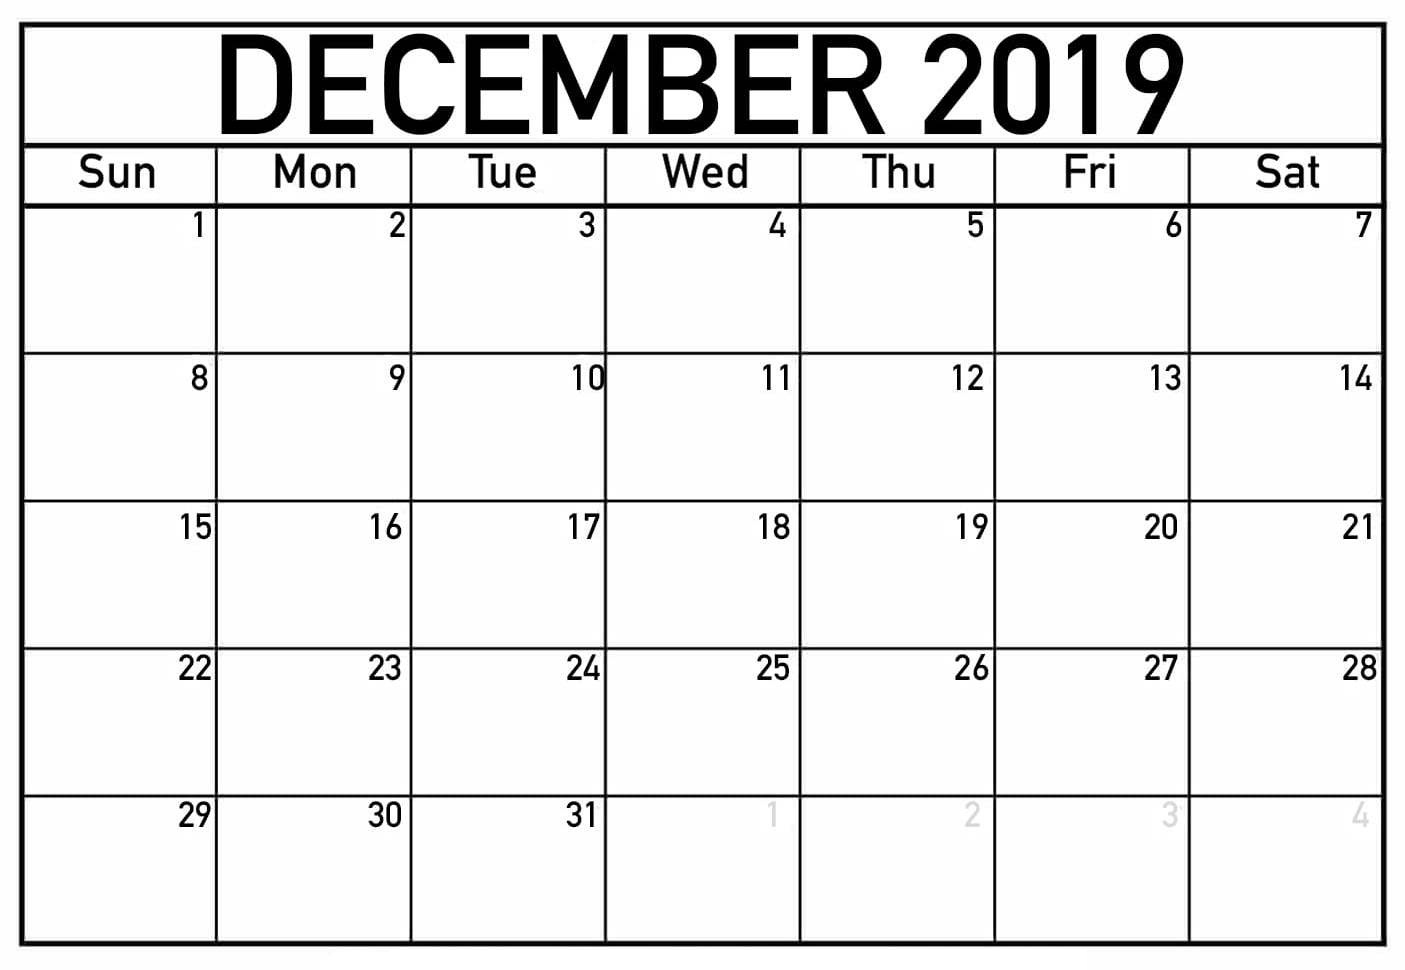 December 2019 Calendar In Excel Template